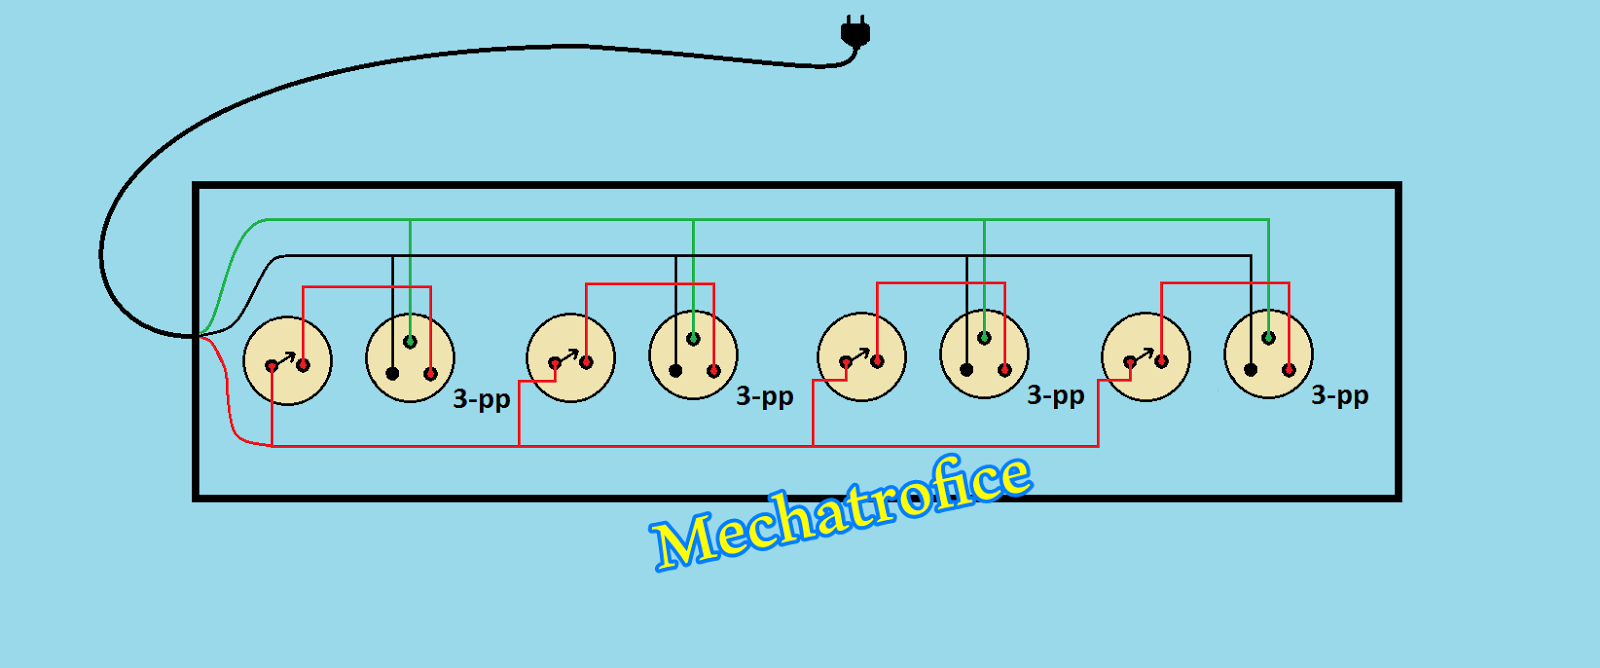 Extension cord wiring diagram | Mechatrofice